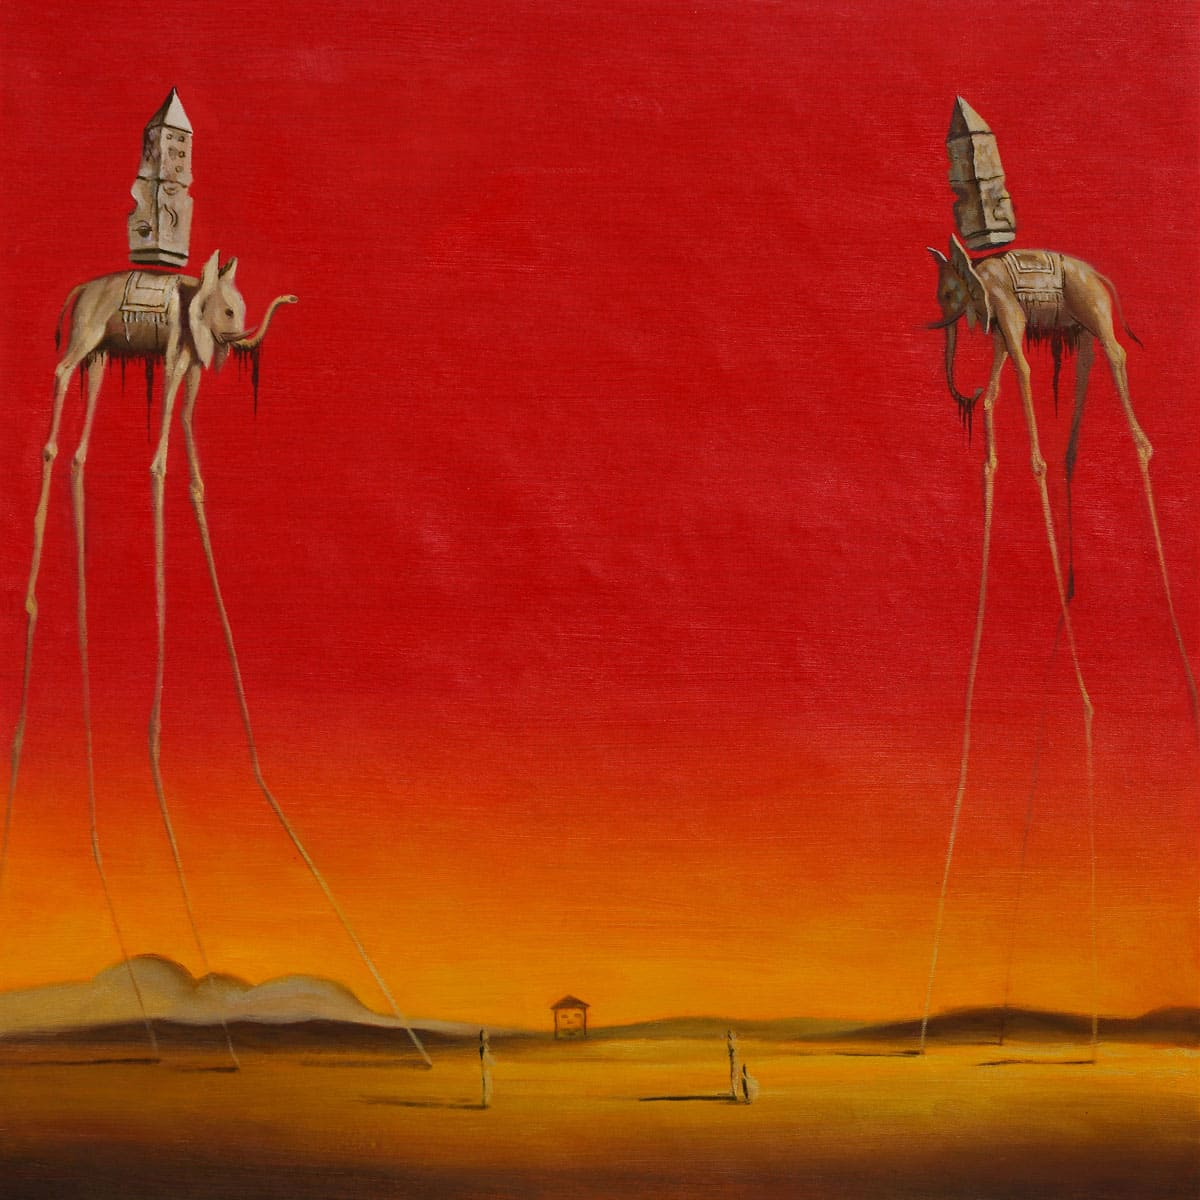 salvador dali paintings list | This Blog Rules | Why go elsewhere?